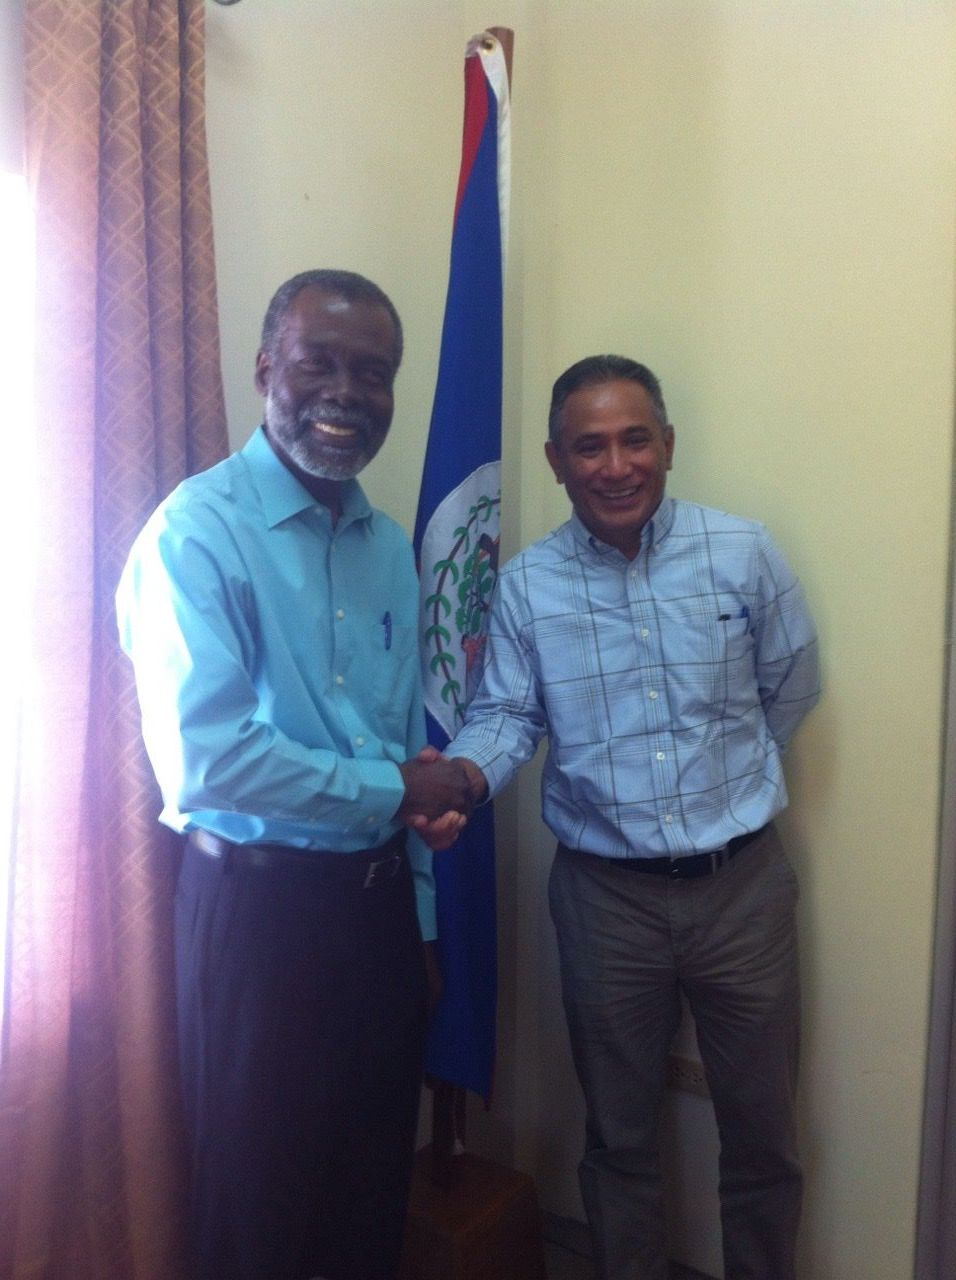 OAS Representative Meets with Leader of the People's United Party (PUP)